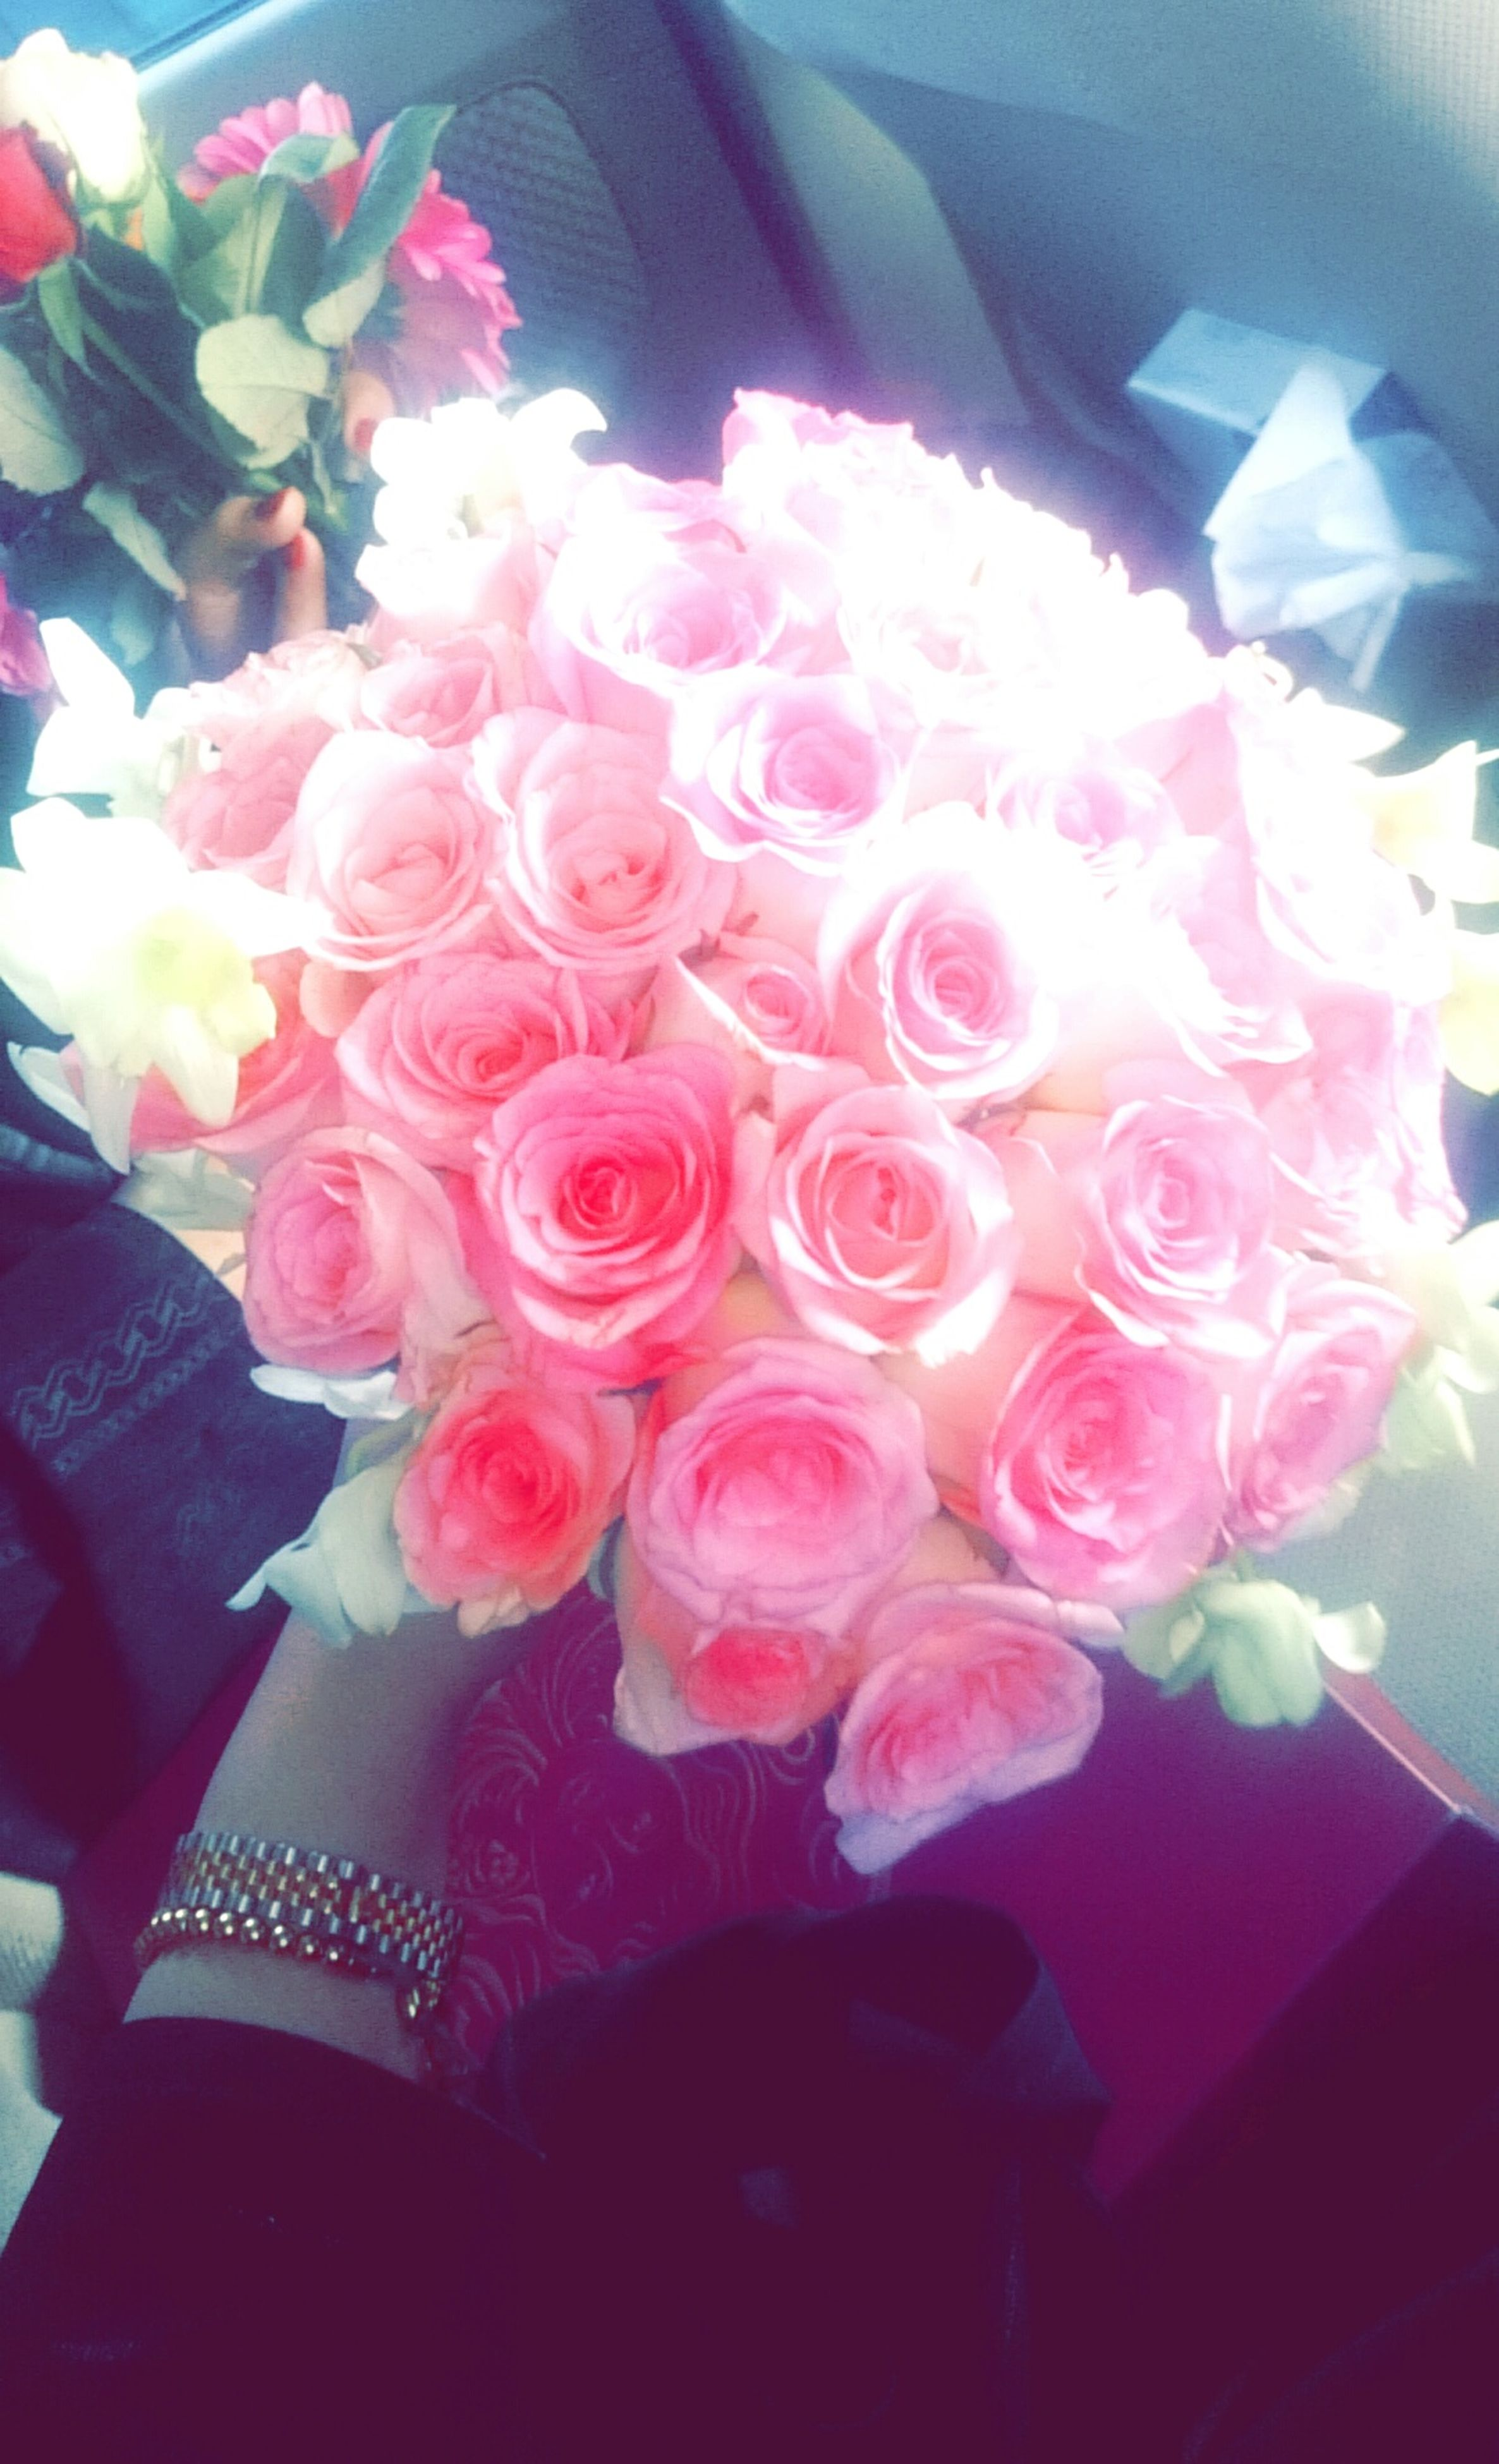 flower, indoors, freshness, petal, fragility, pink color, close-up, flower head, rose - flower, vase, high angle view, decoration, bunch of flowers, bouquet, table, home interior, beauty in nature, no people, flower arrangement, nature